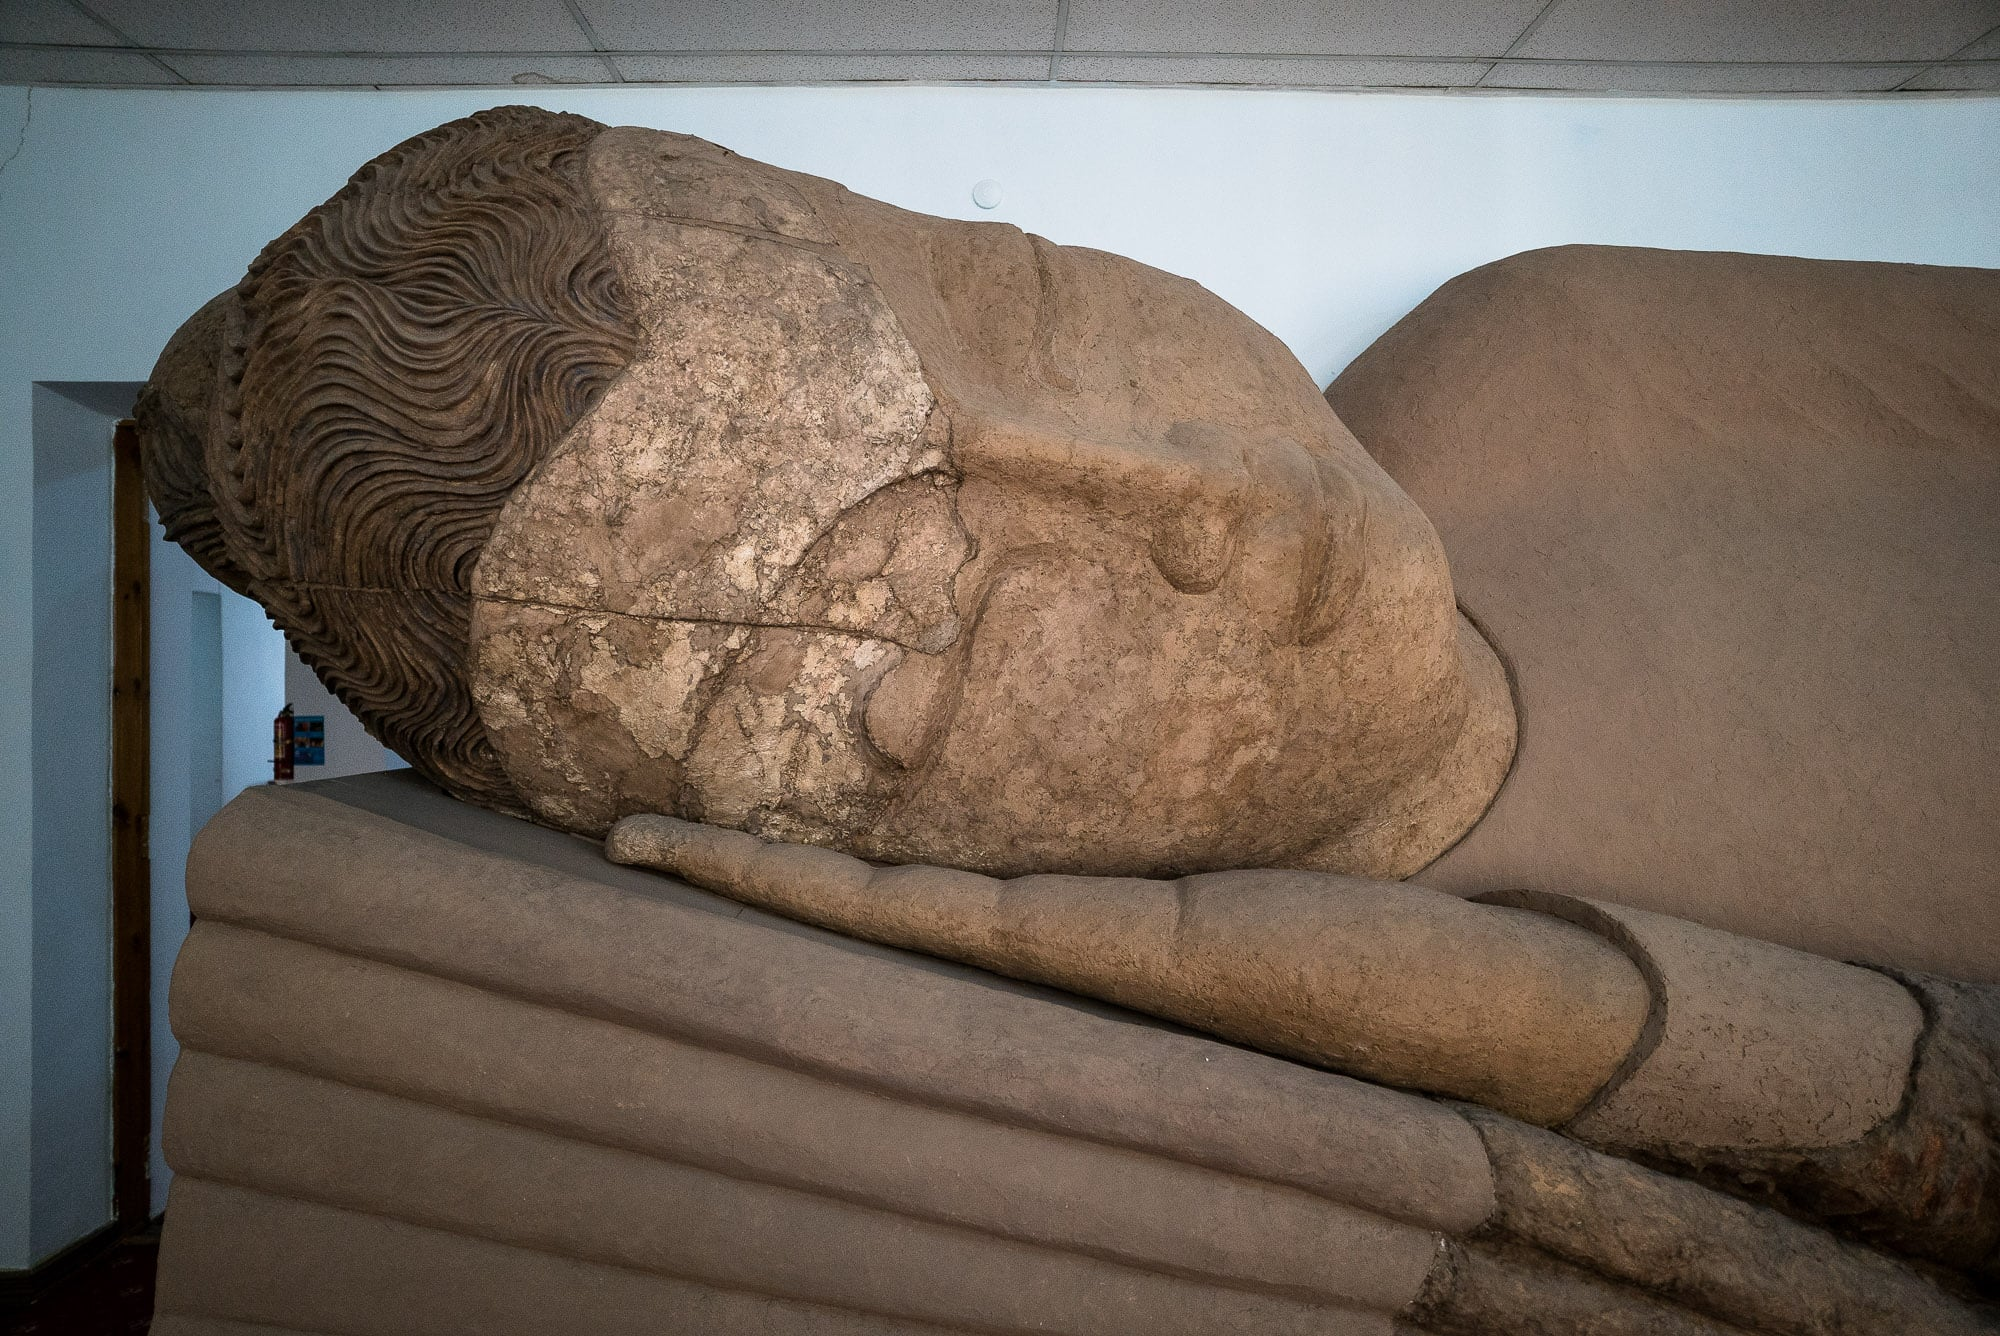 head of the Reclining Buddha in Dushanbe